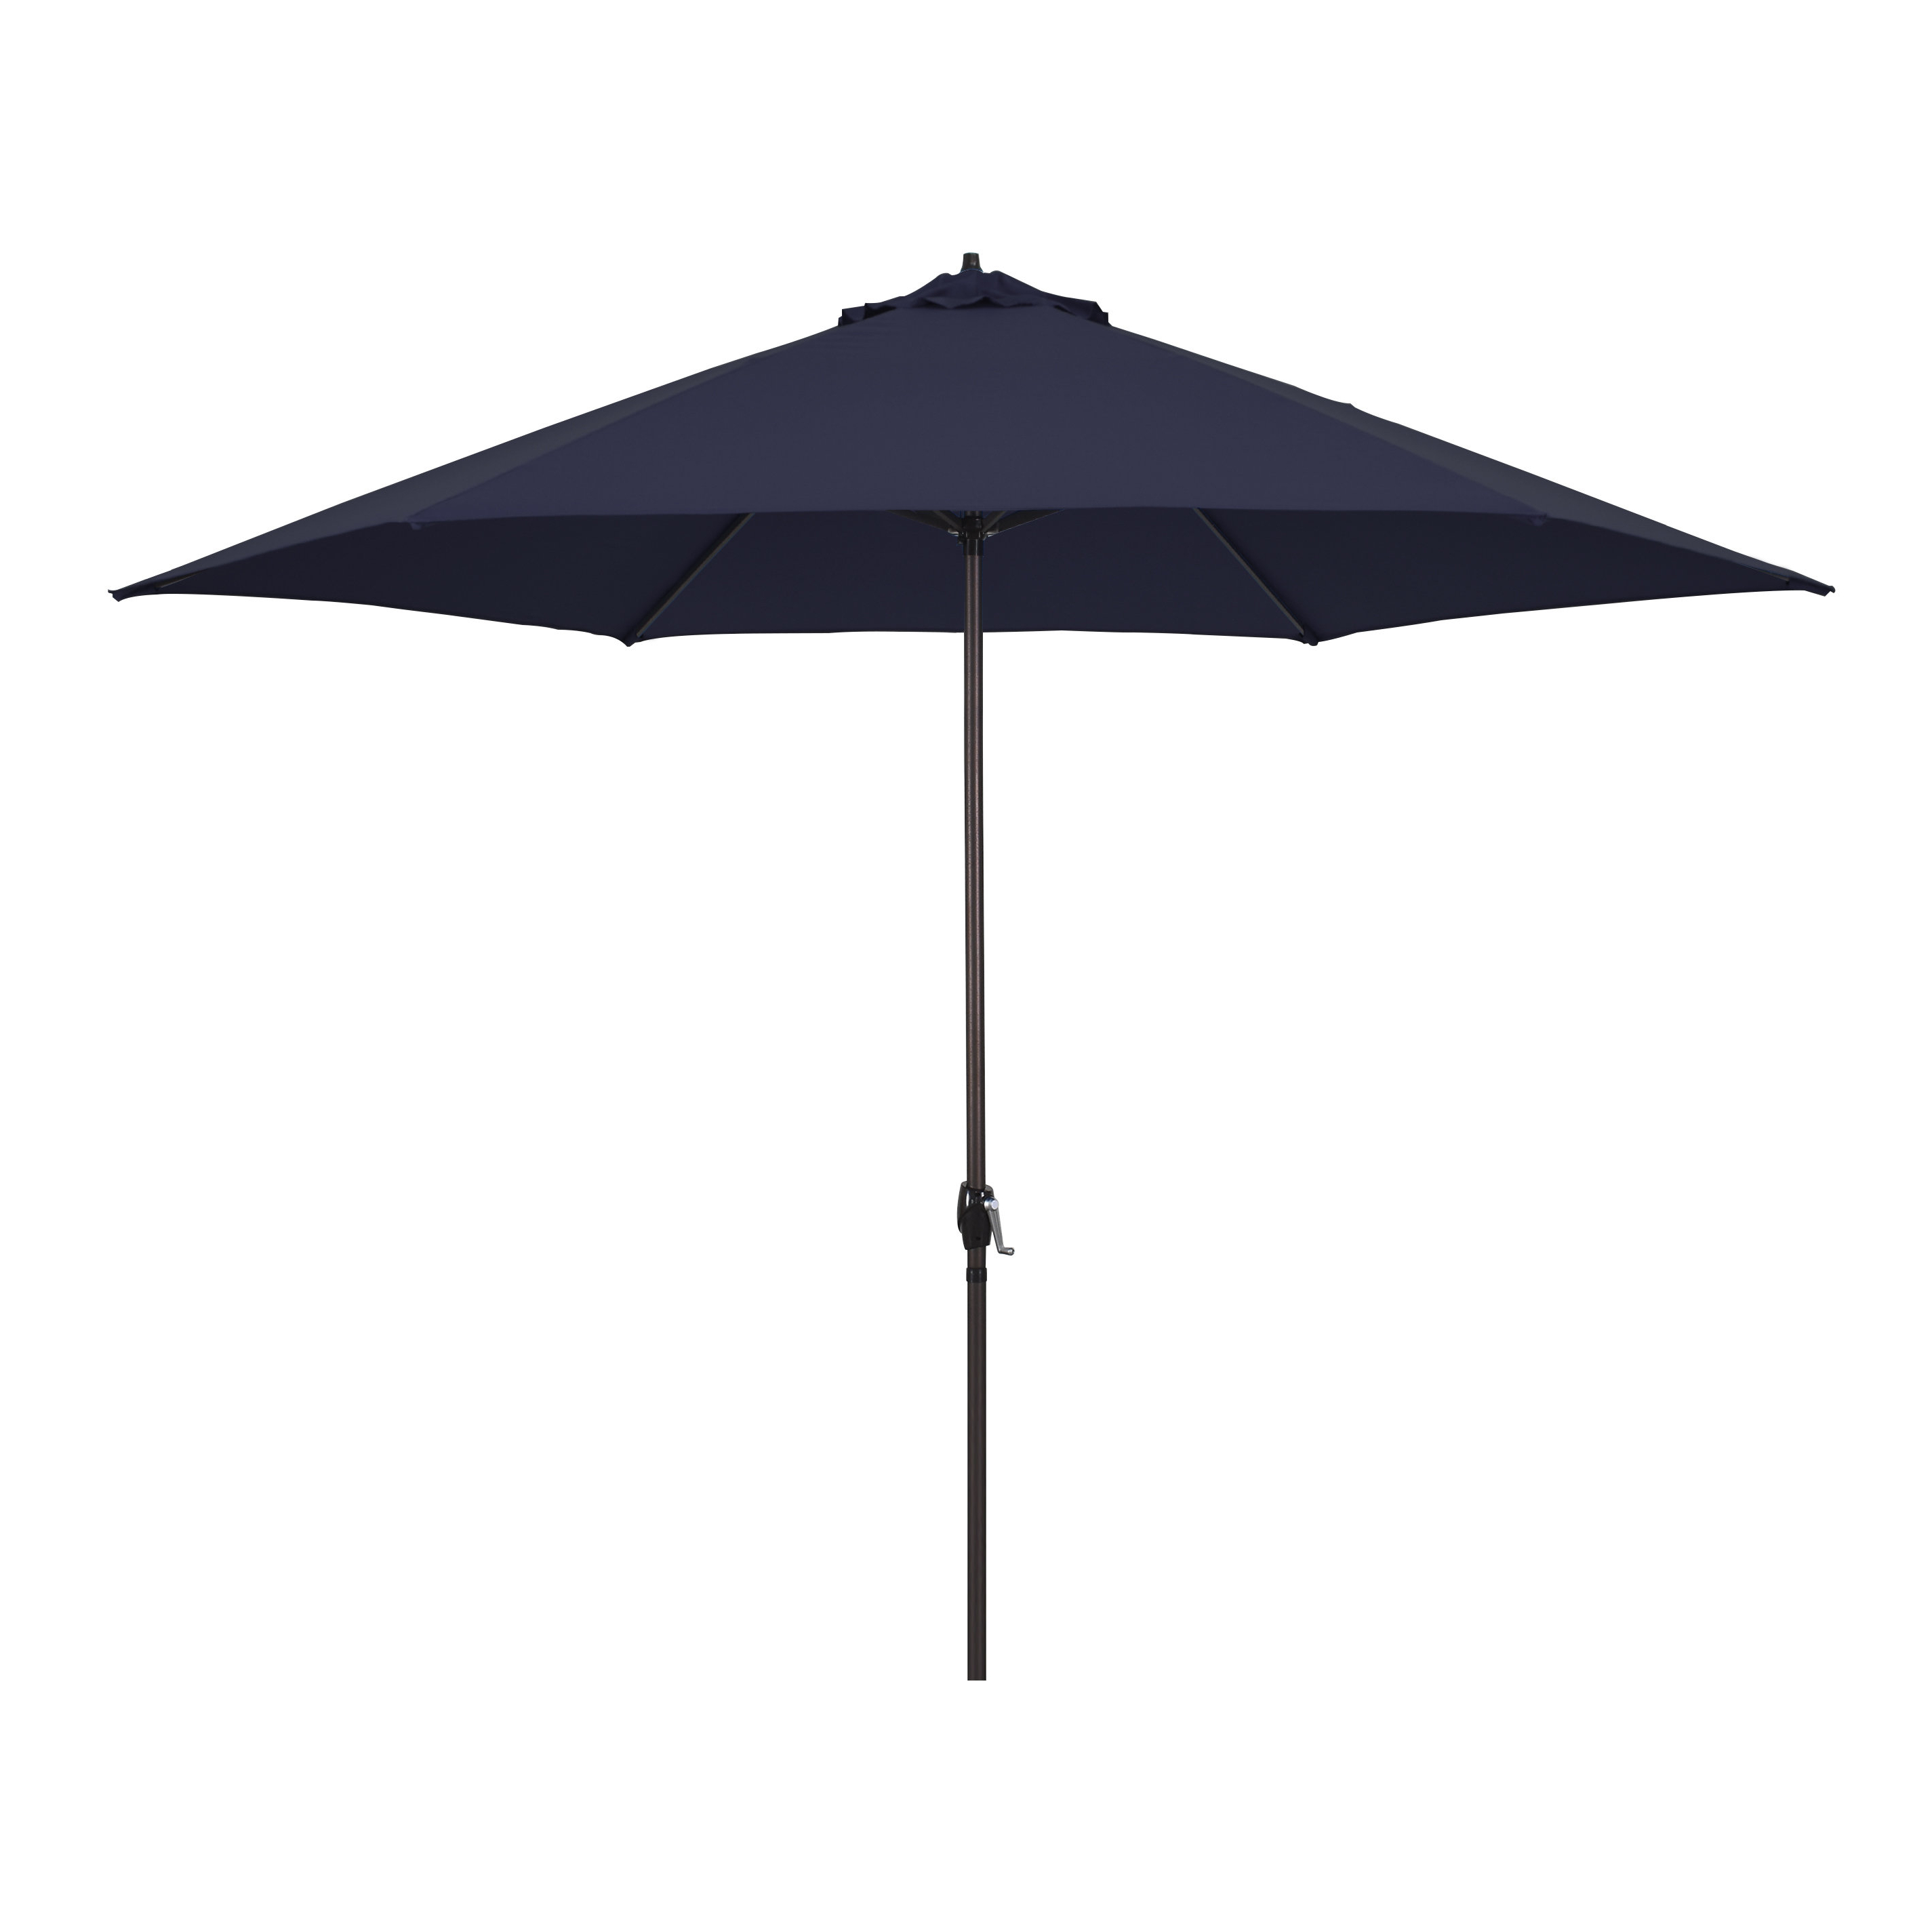 Launceston Market Umbrellas Intended For Most Up To Date Mcdougal 11' Market Umbrella (Gallery 12 of 20)